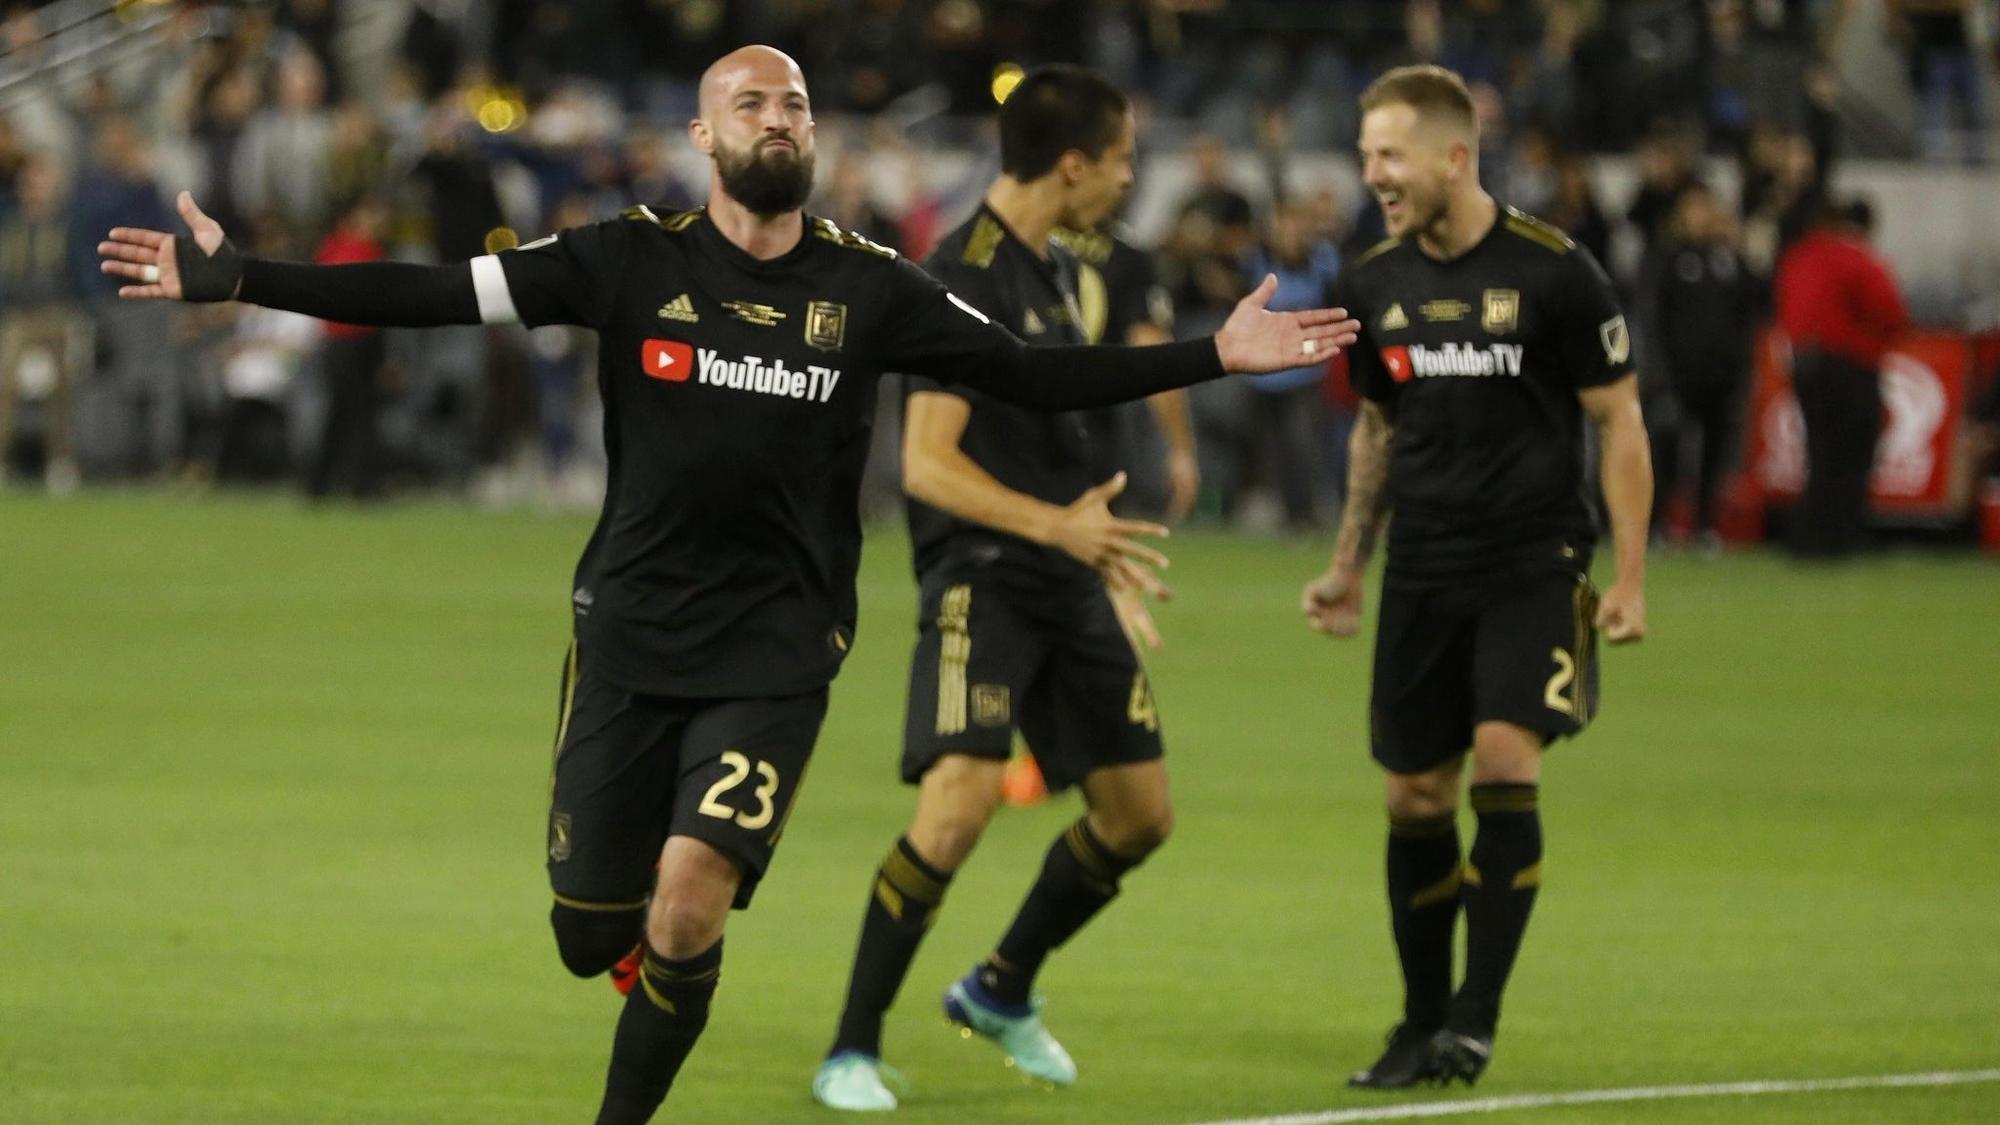 Despite losing players to World Cup, LAFC looks to continue winning ways in Houston